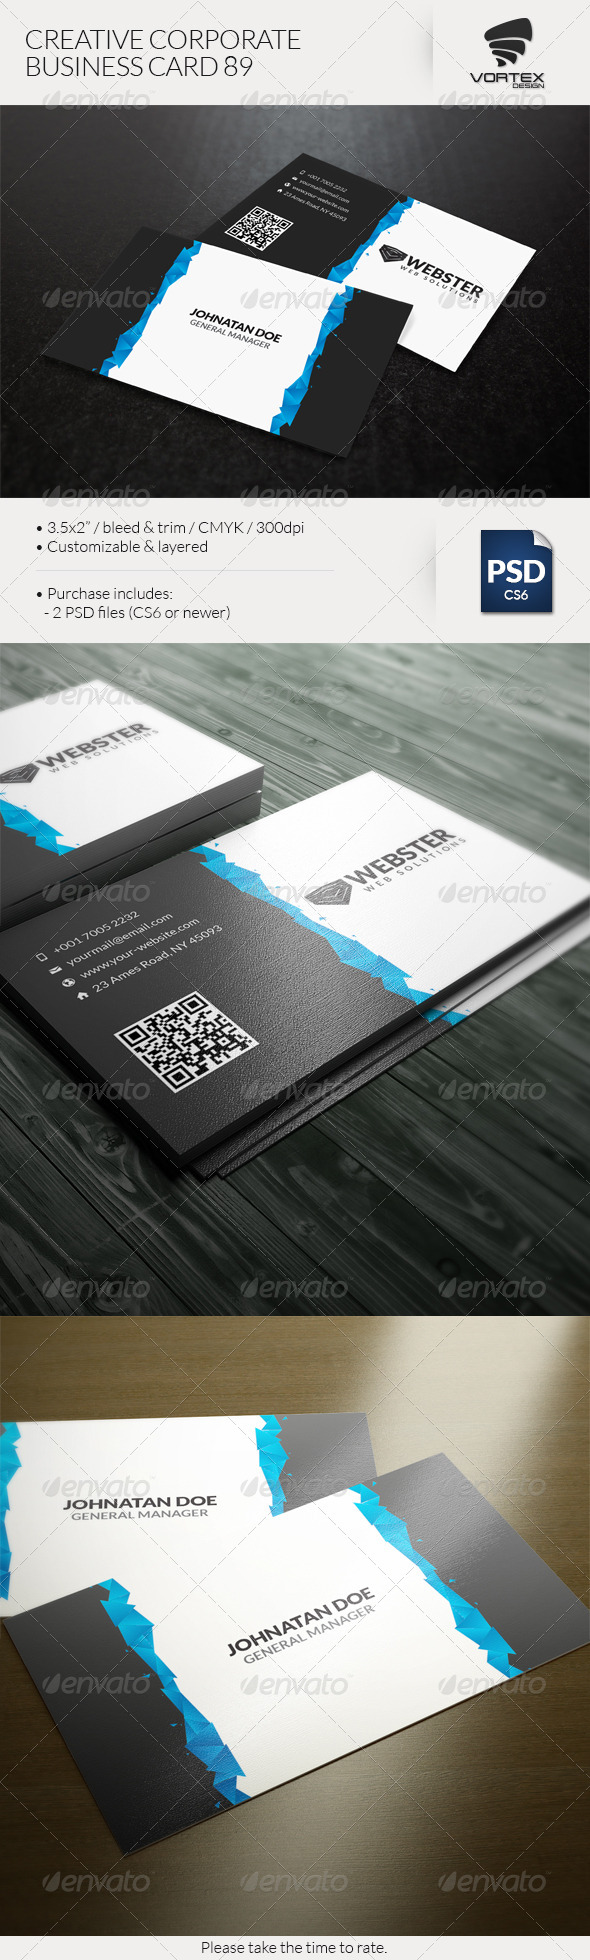 GraphicRiver Creative Corporate Business Card 89 8197150